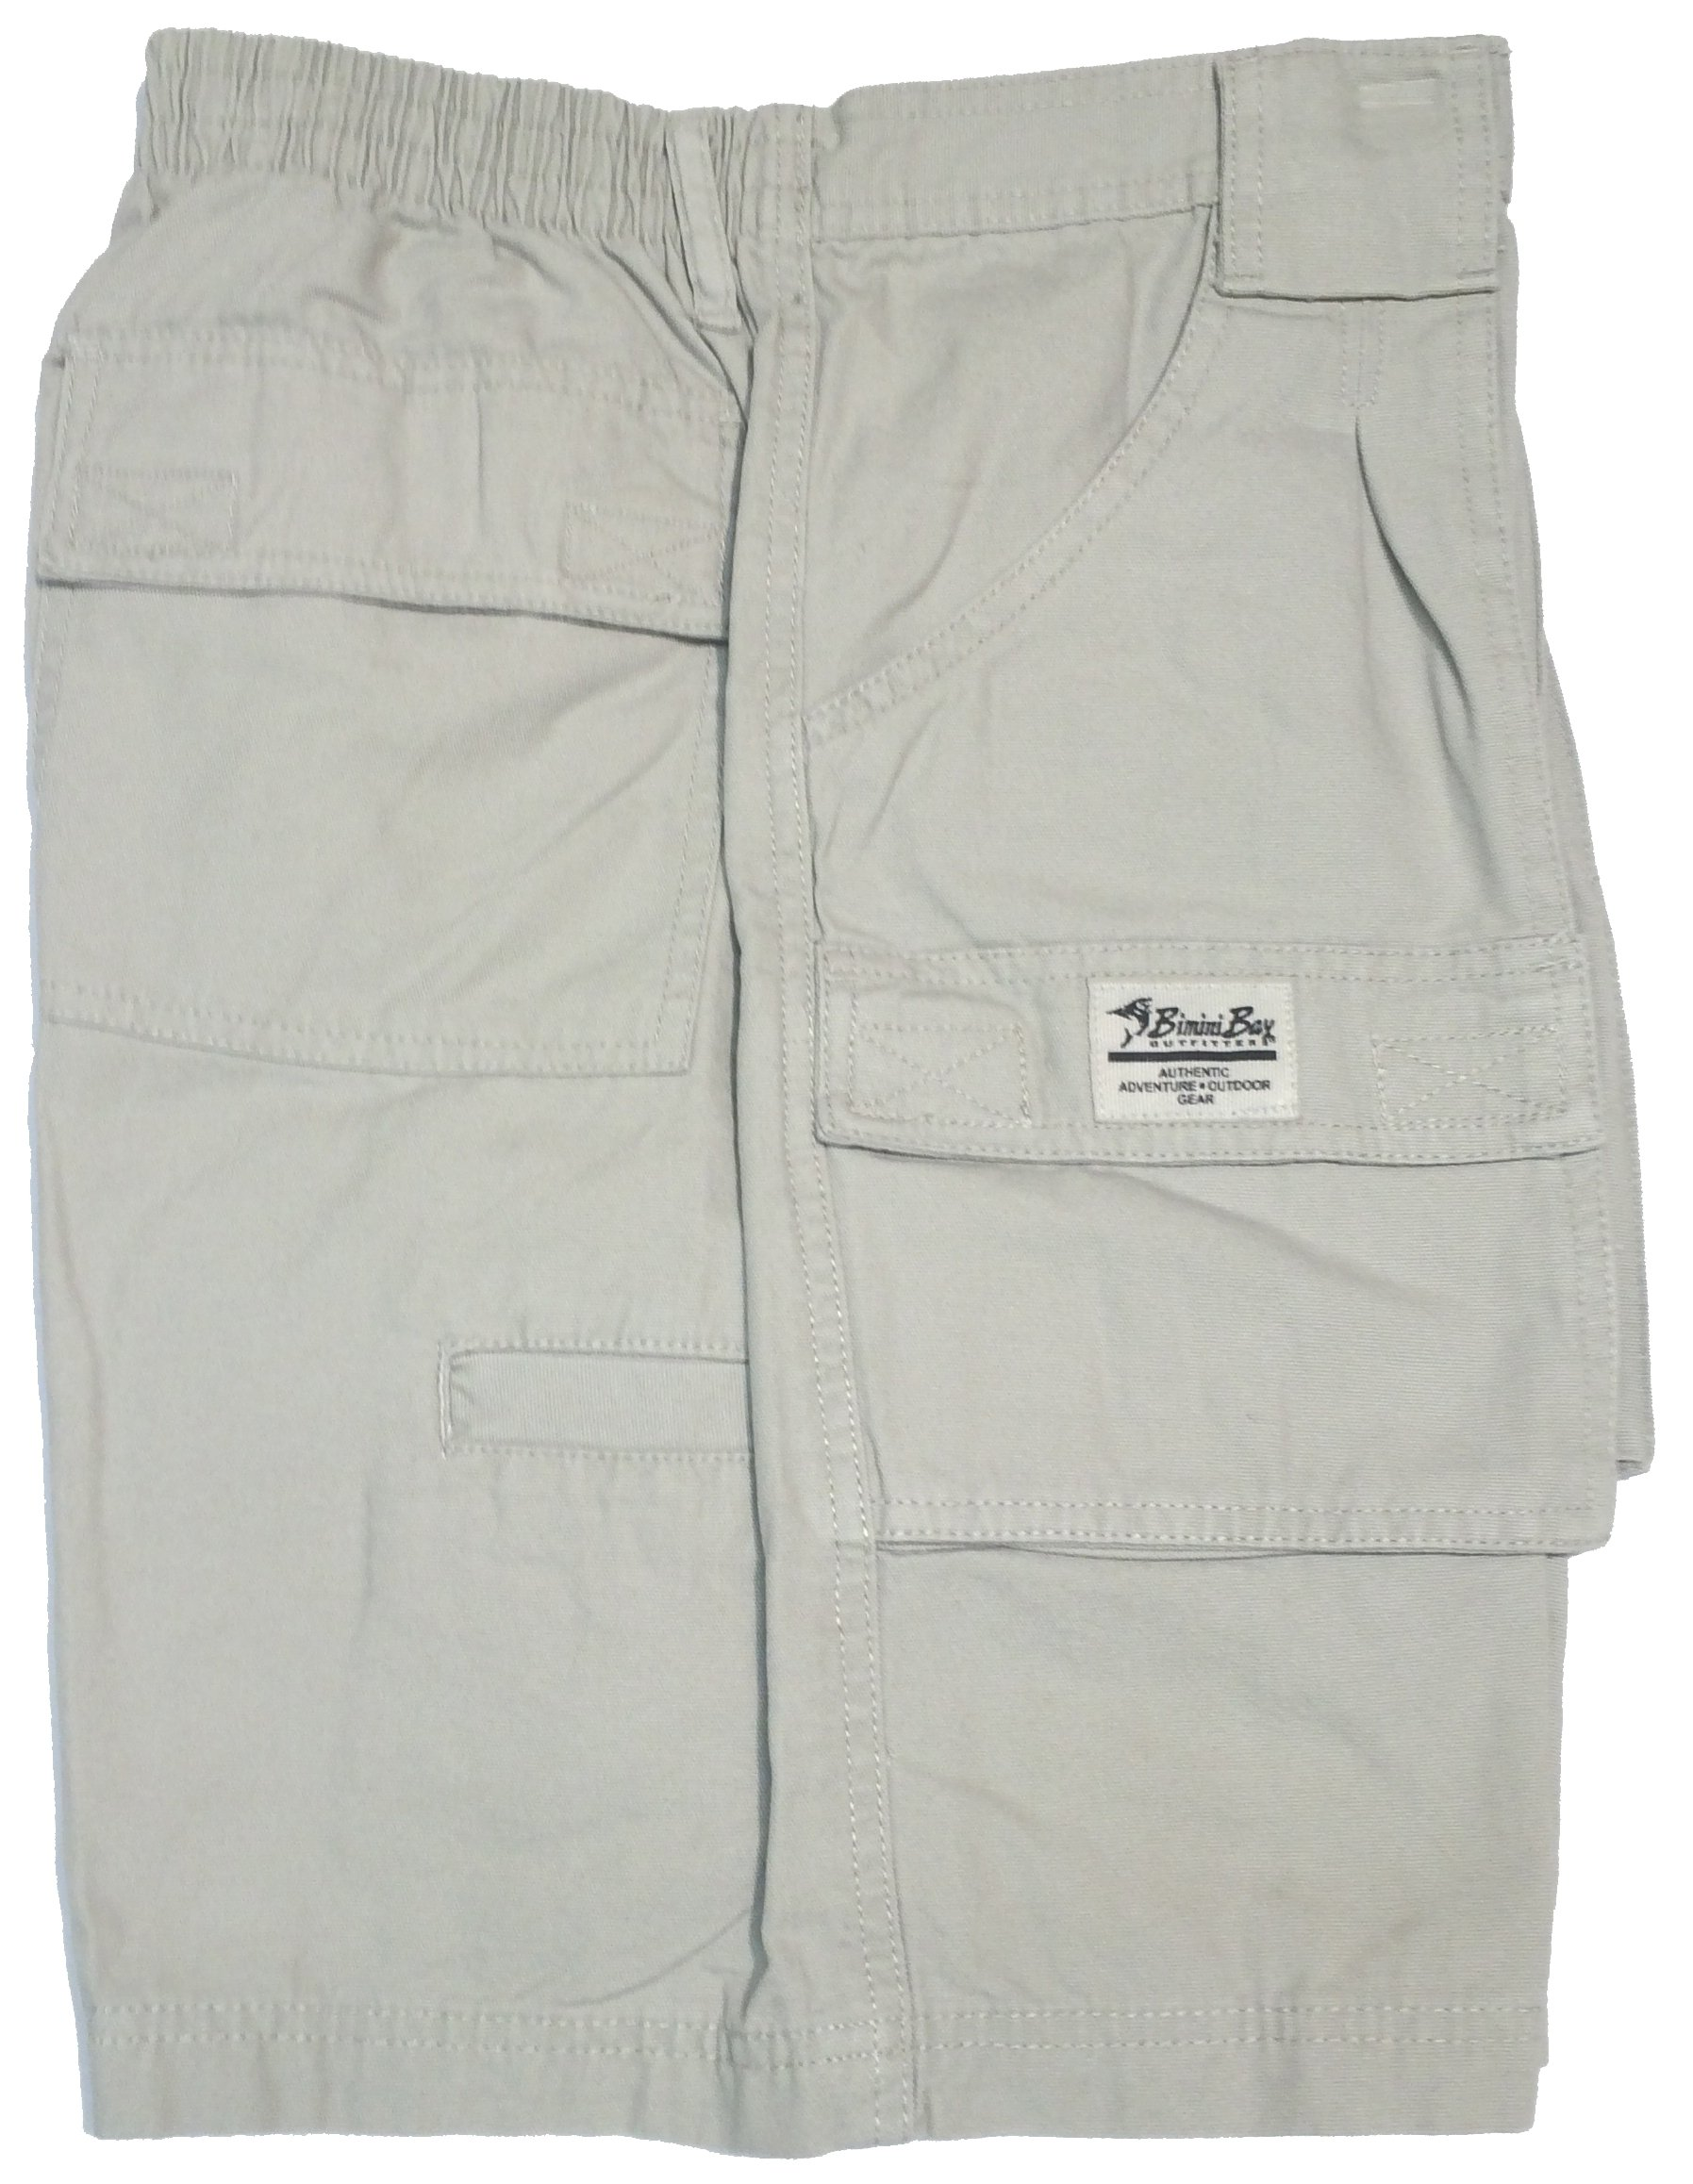 Bimini Bay Outfitters Outback Hiker Cotton Cargo Short (2-Pack) (32, Sand) by Bimini Bay Outfitters